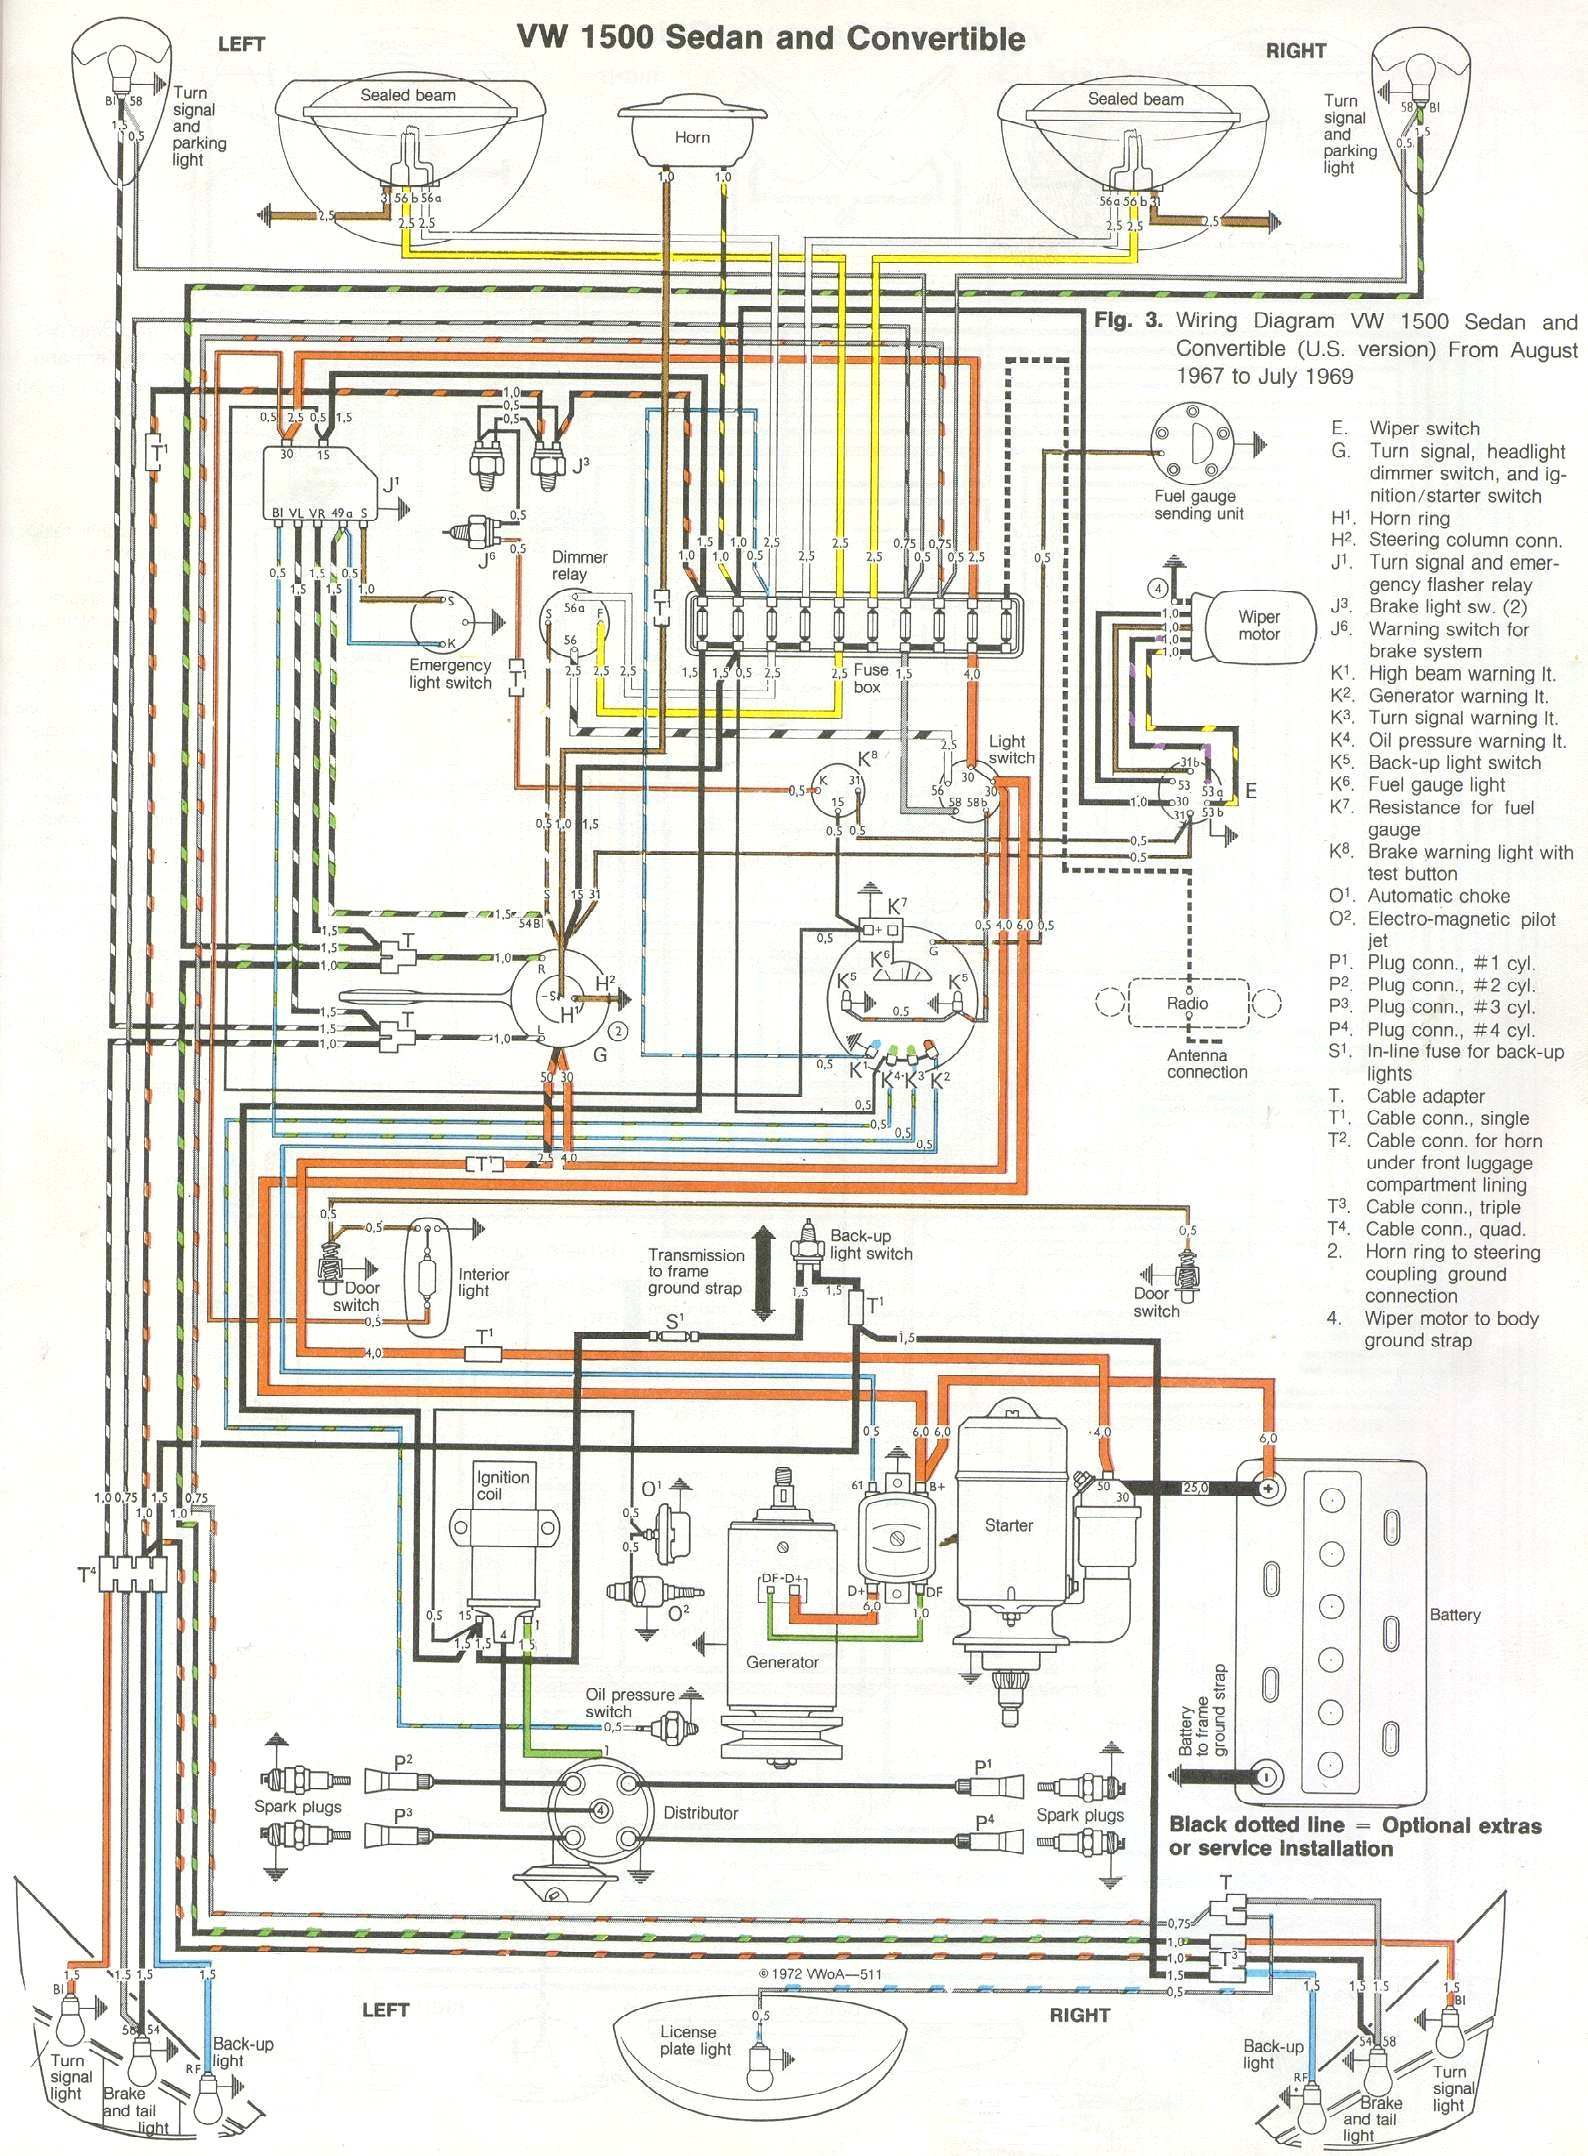 1997 evinrude wiring diagram wiring diagram data nl johnson wiring diagram 71 wiring and harnesses marine engine parts ignition switch wiring diagram 1997 evinrude wiring diagram